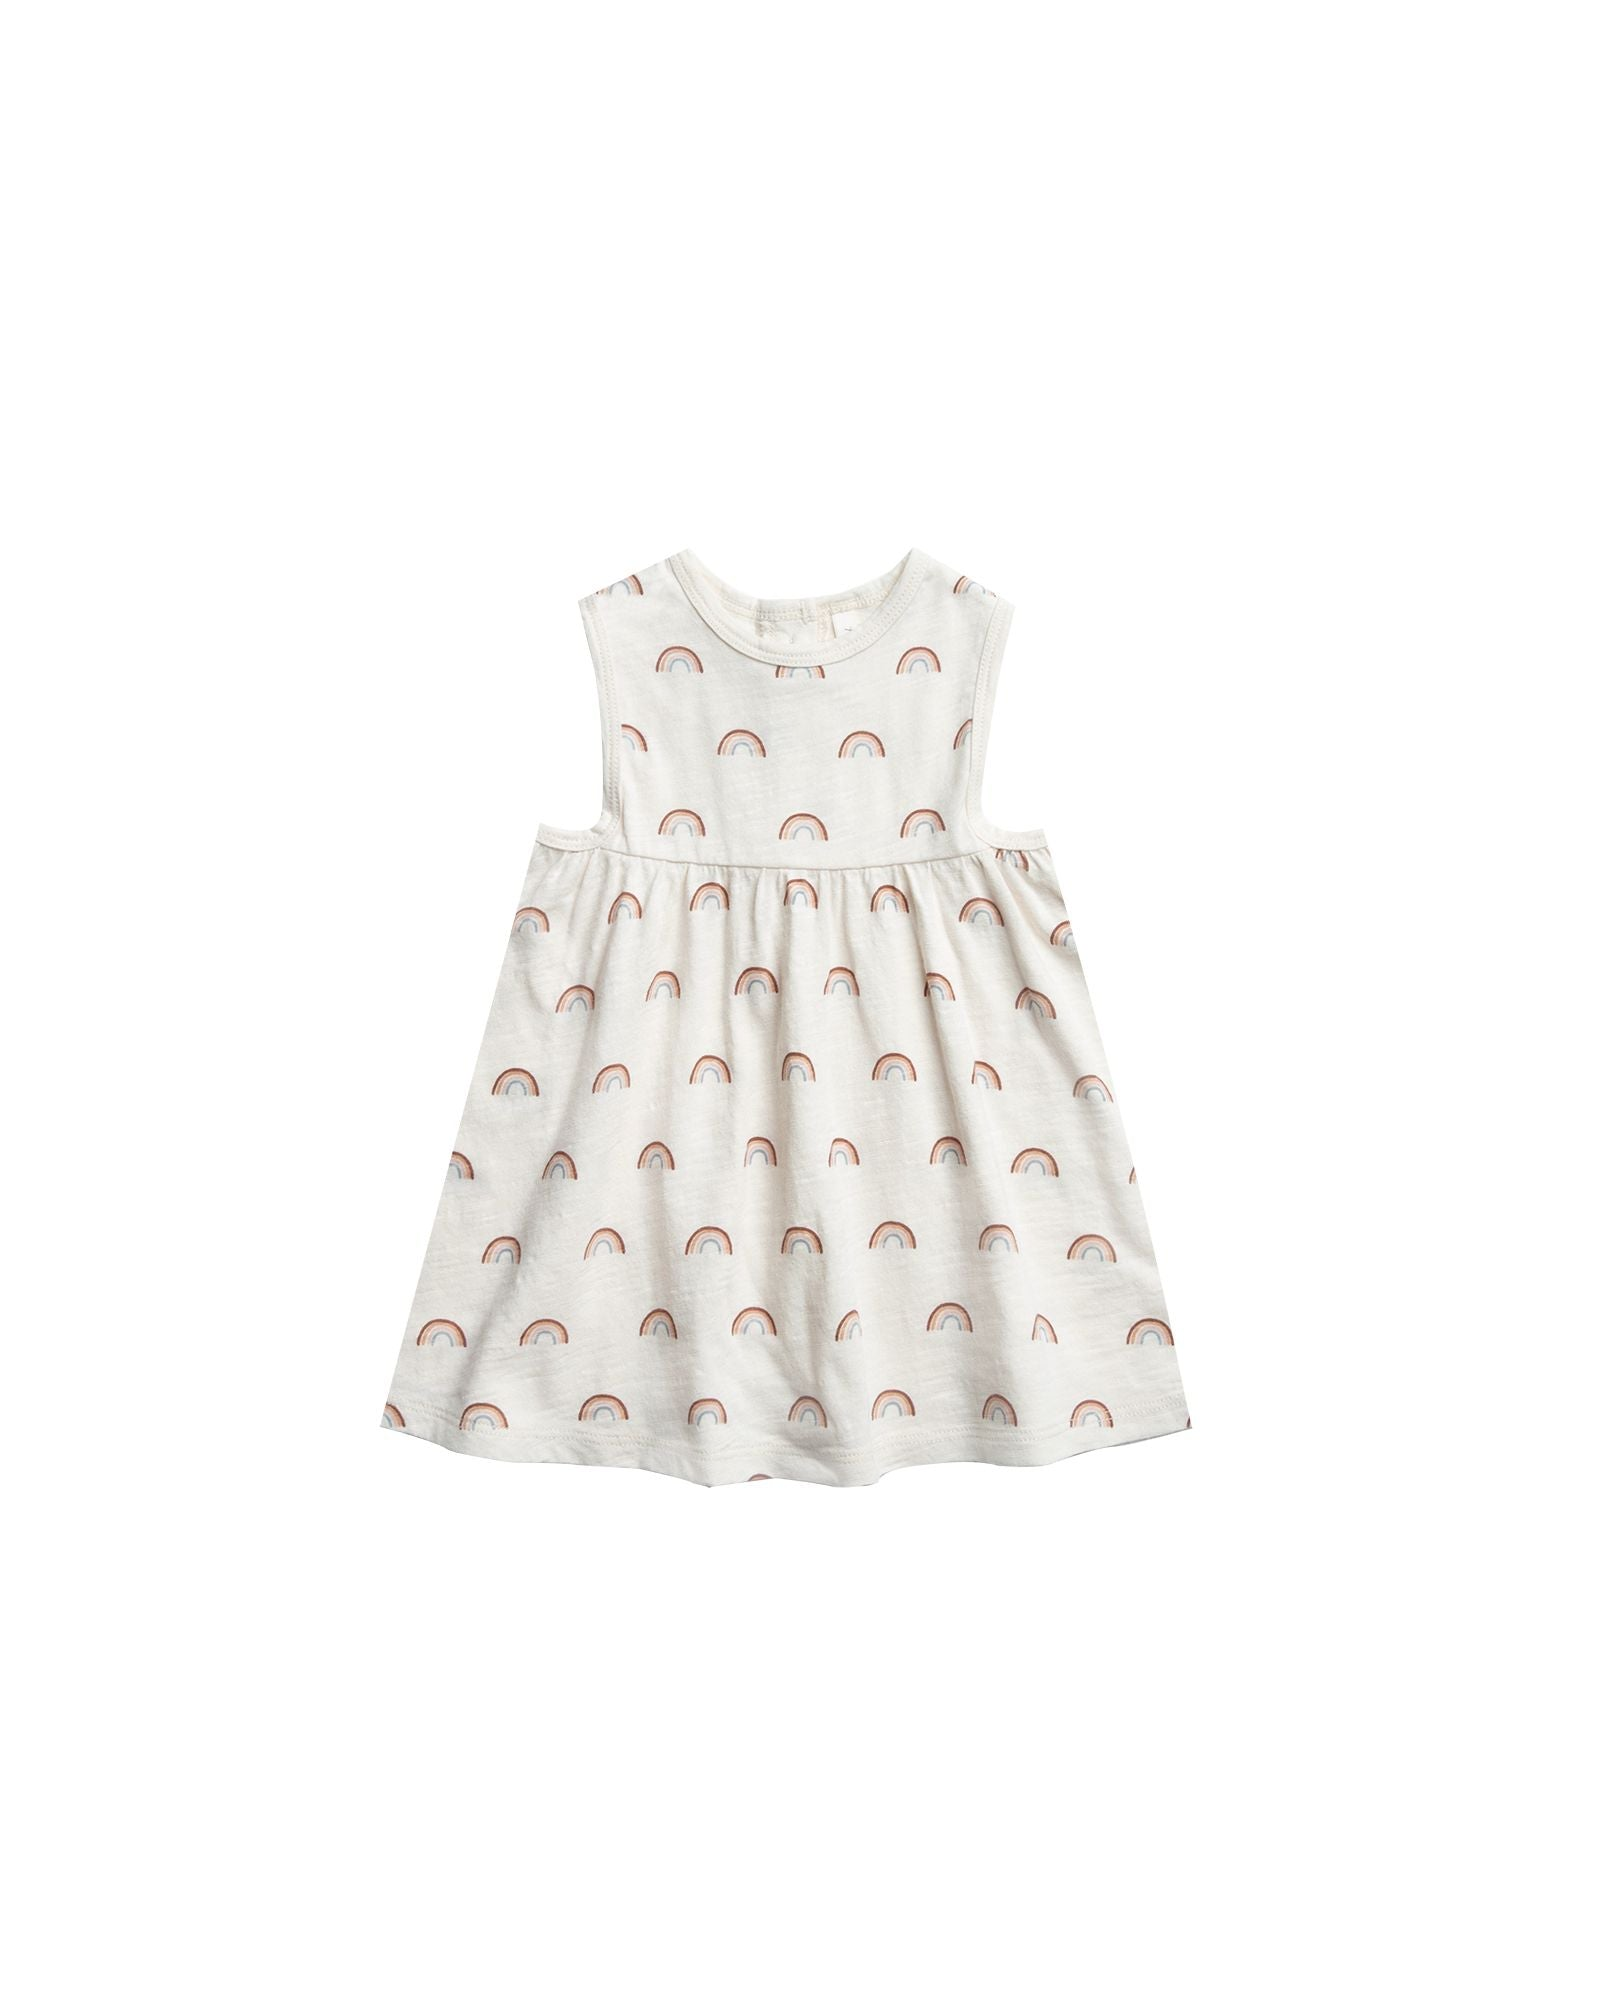 Rylee and Cru Rainbow Layla Dress